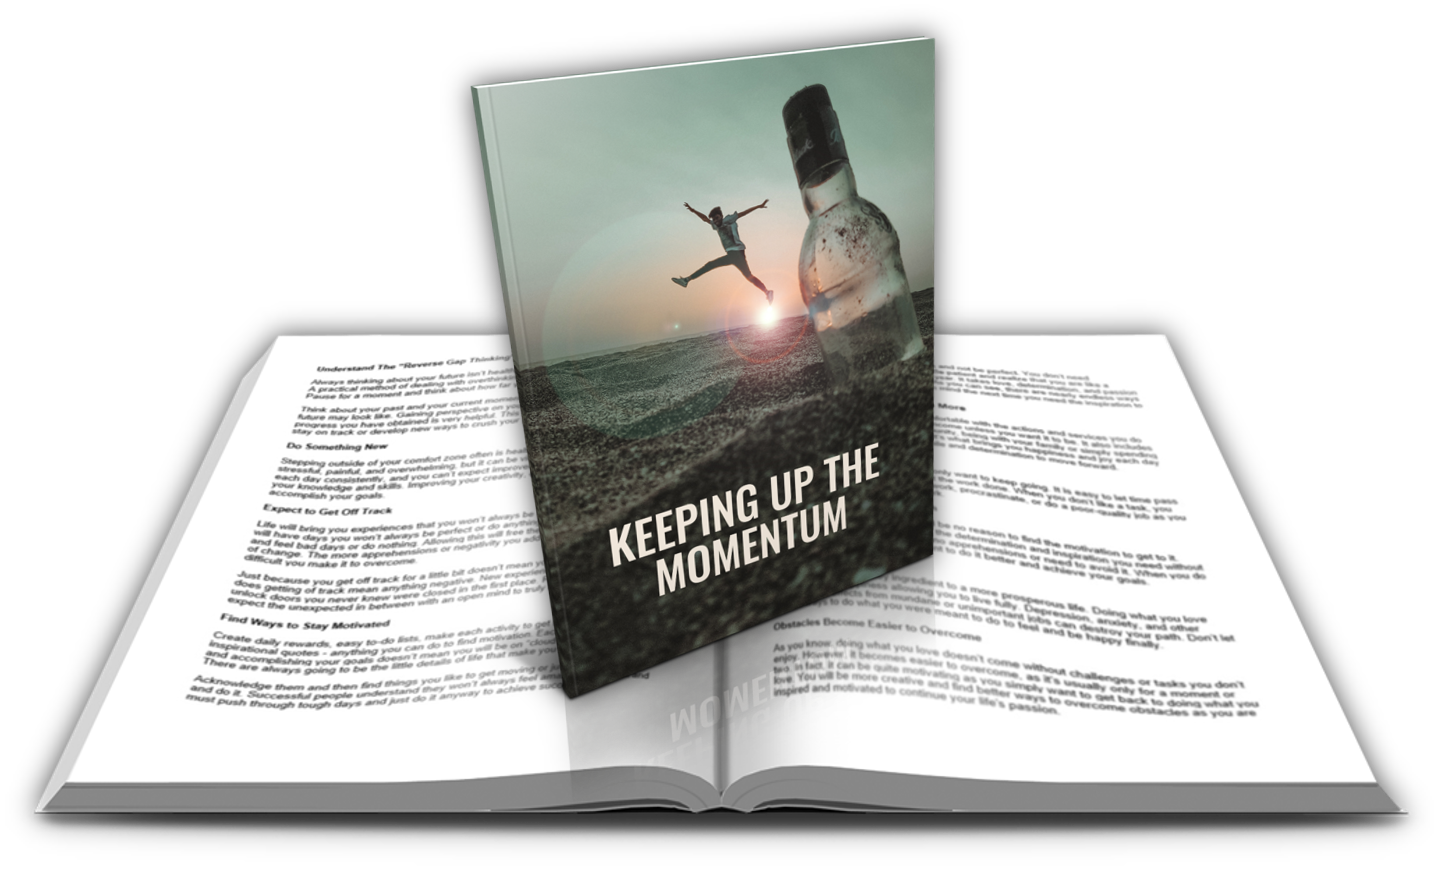 4-Keeping Up the Momentum-Report image